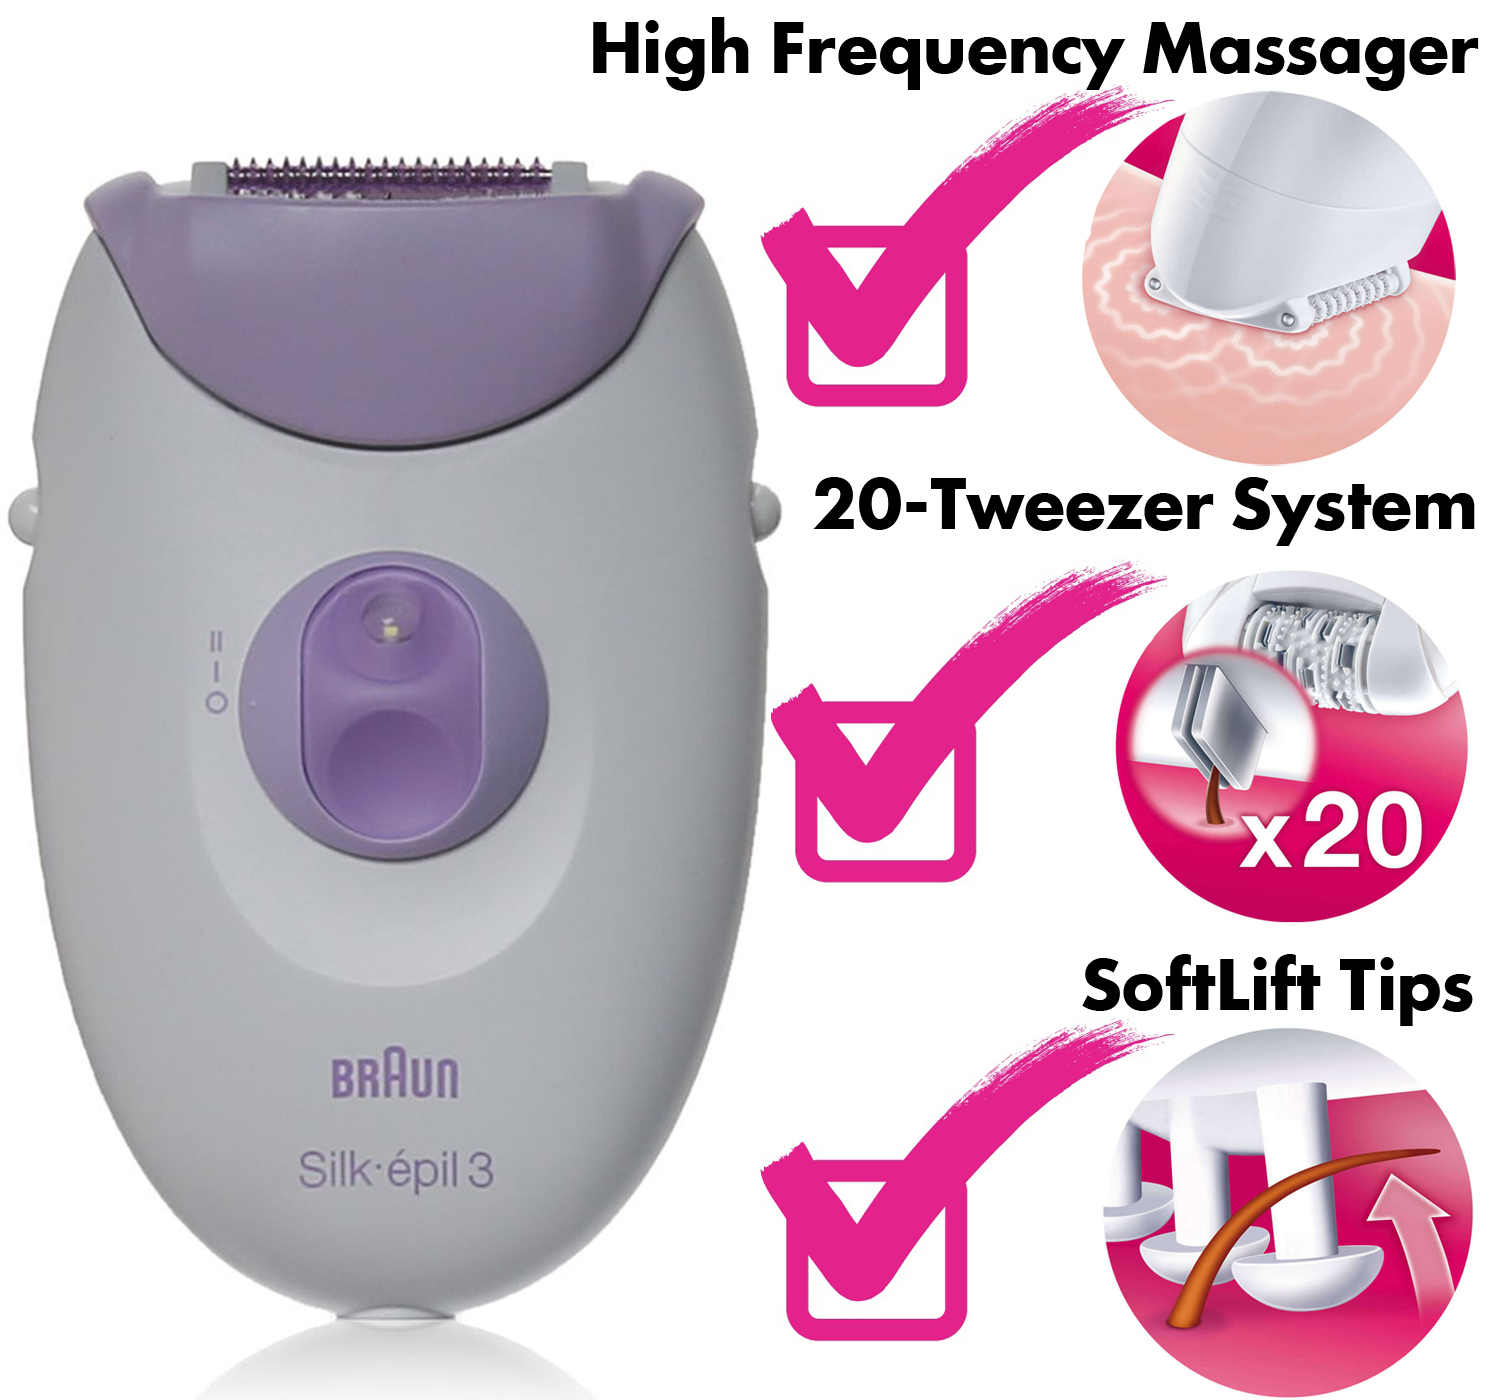 braun silk epil 3 epilator review. Black Bedroom Furniture Sets. Home Design Ideas